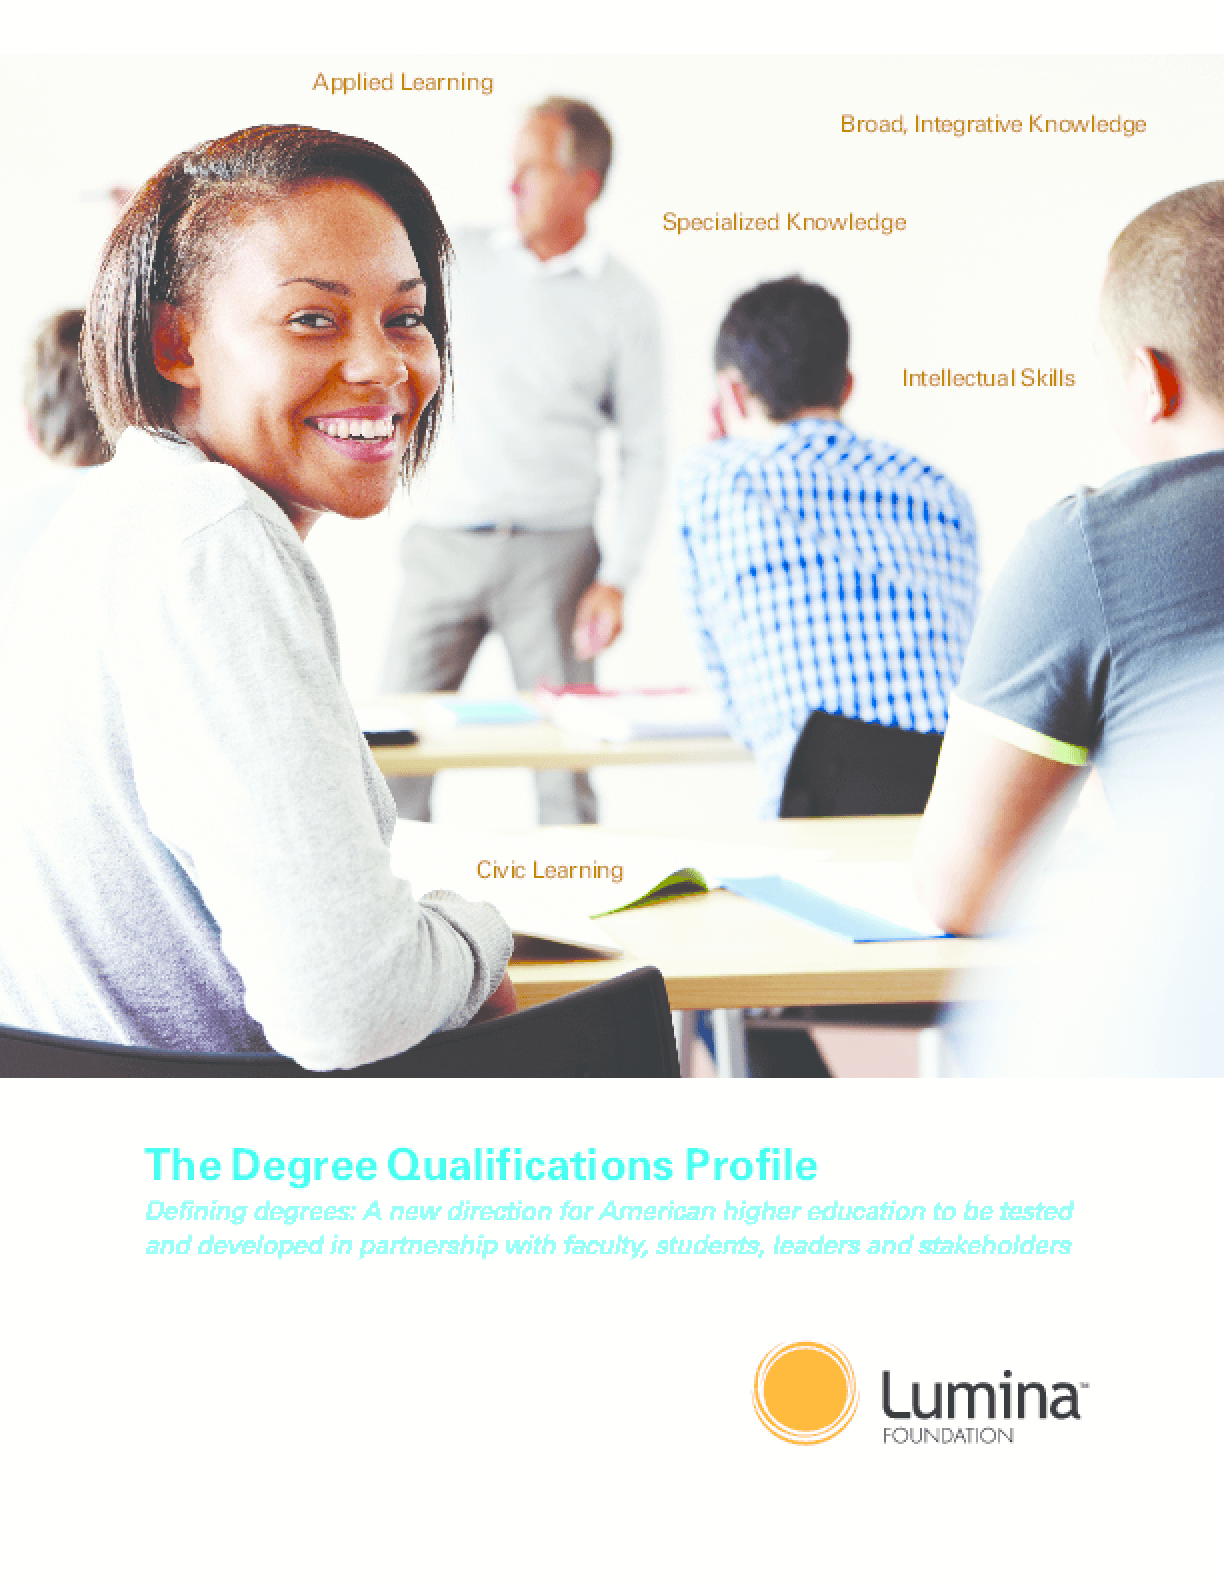 The Degree Qualifications Profile